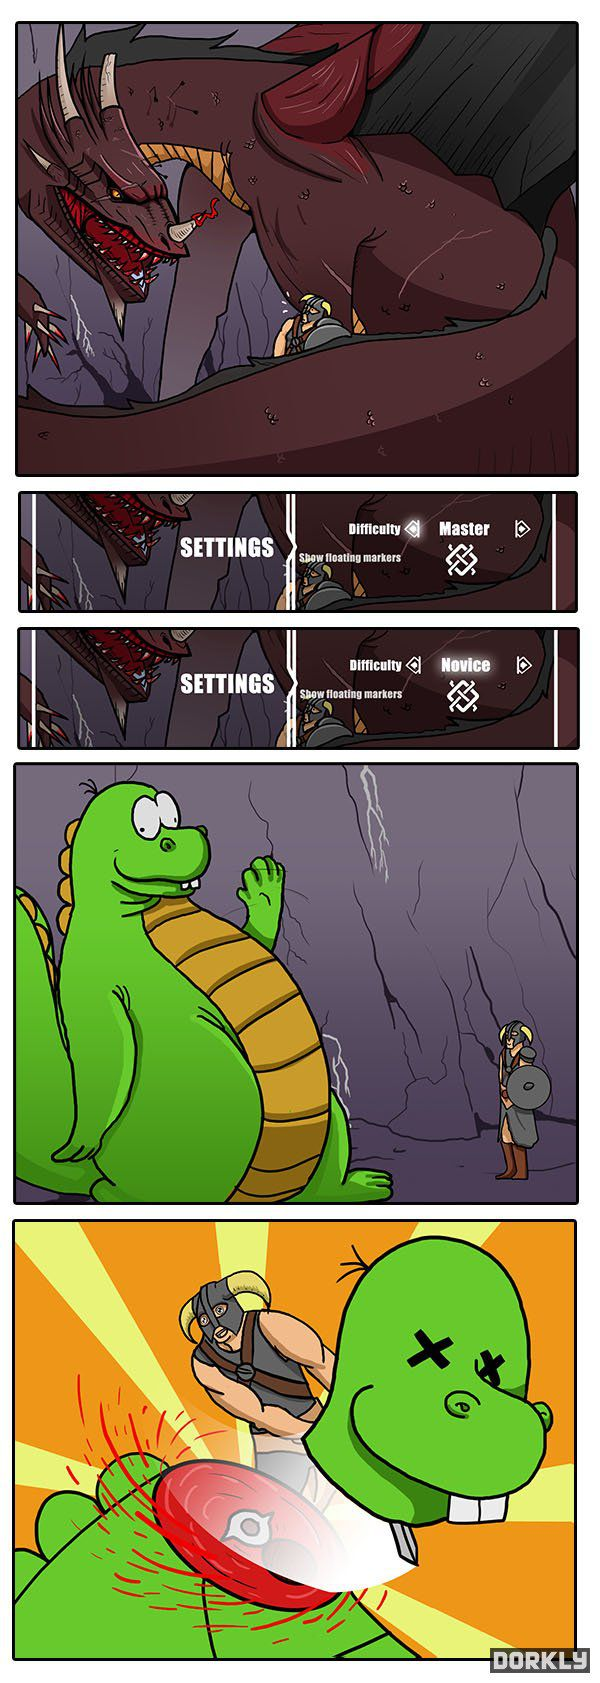 Skyrim Difficulty